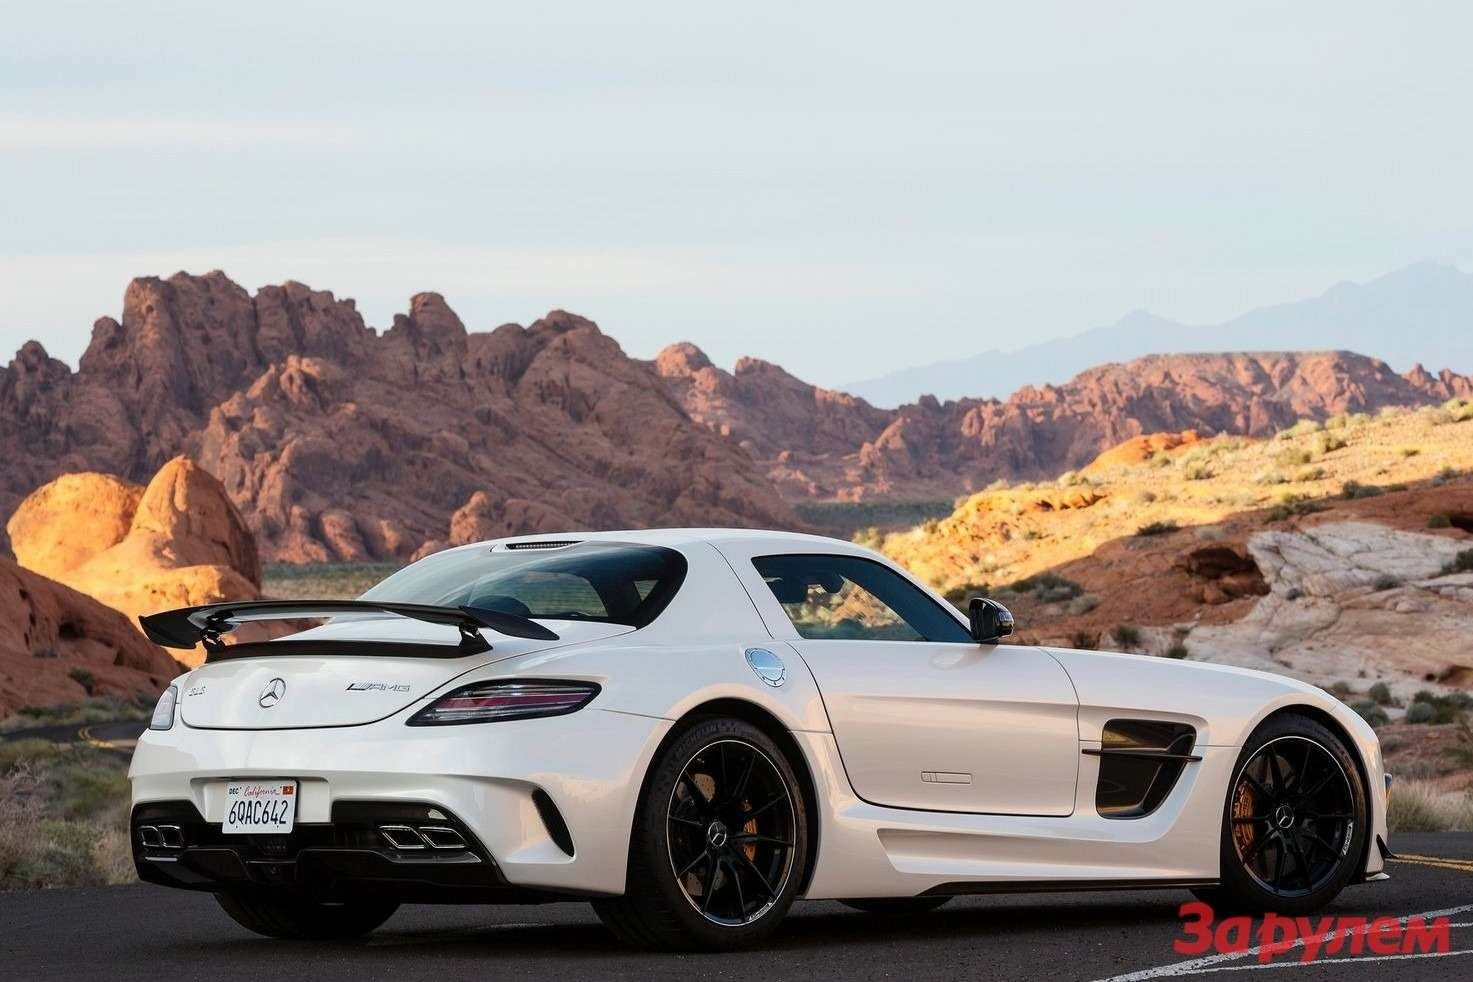 Mercedes-Benz SLS AMG Black Series side-rear view